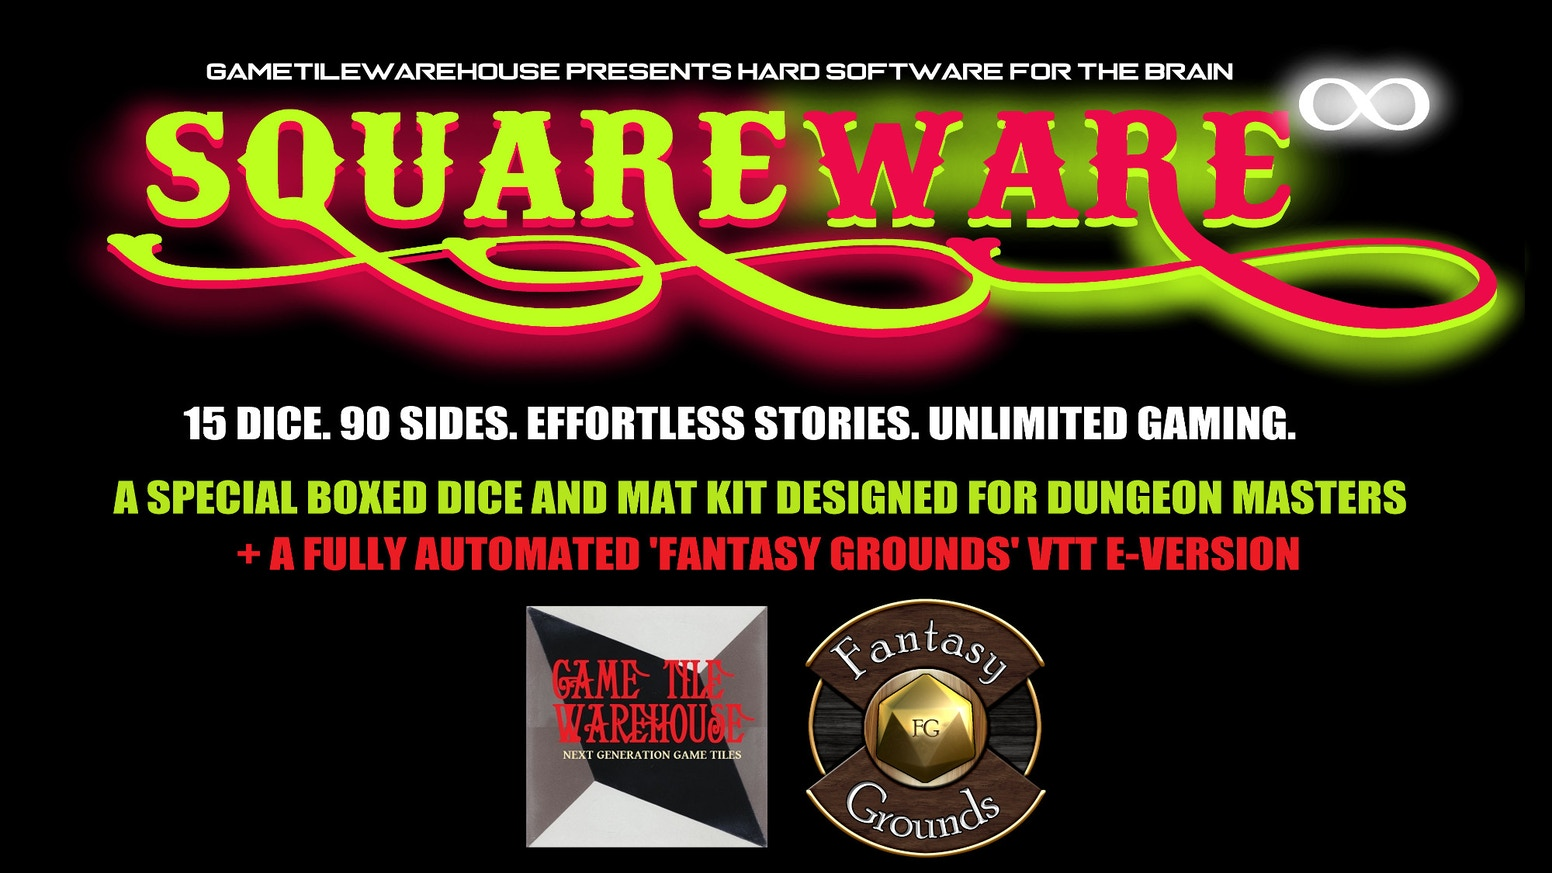 SquareWare: RPG Tools for Sparking the Creative Brain by